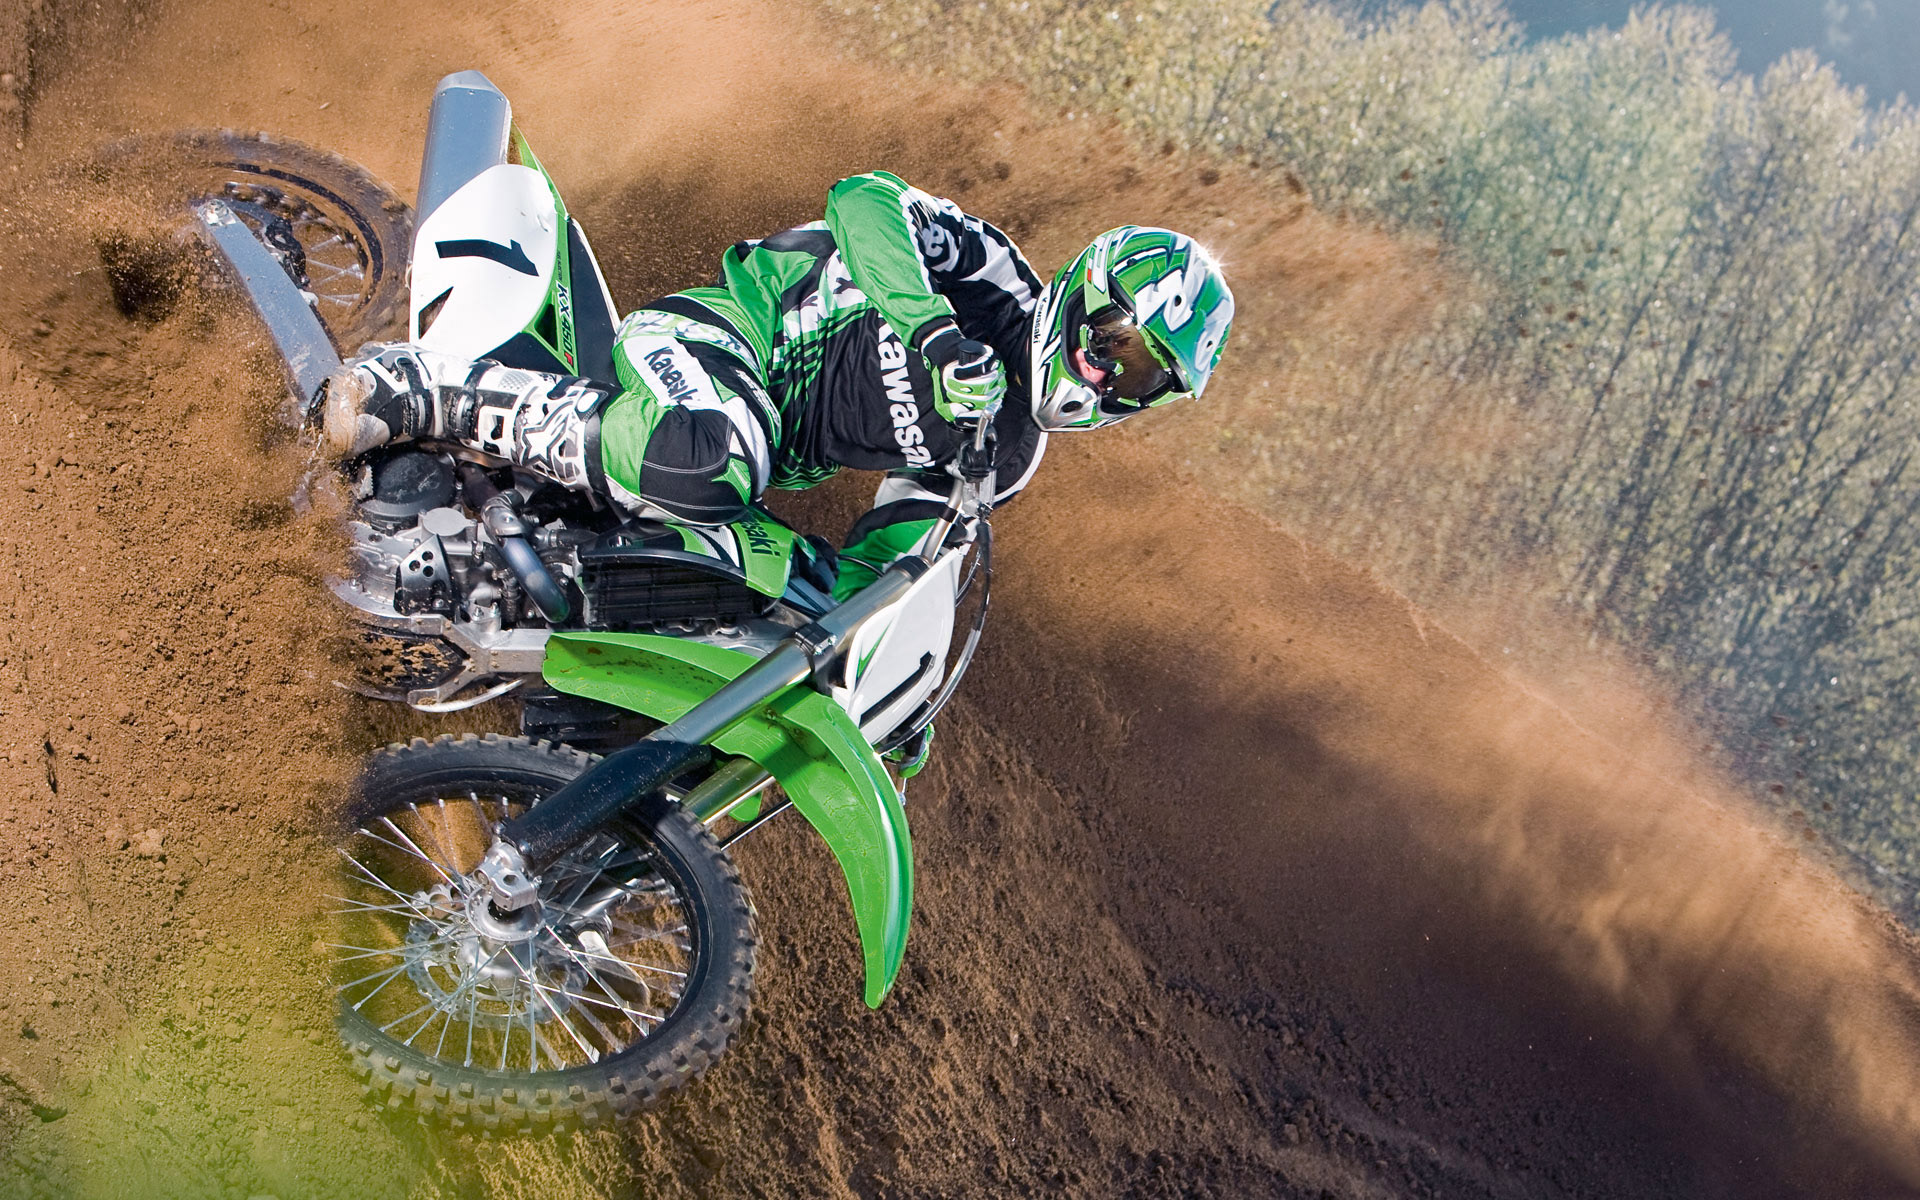 Image Motocross Motorcycles Wallpapers And Stock Photos